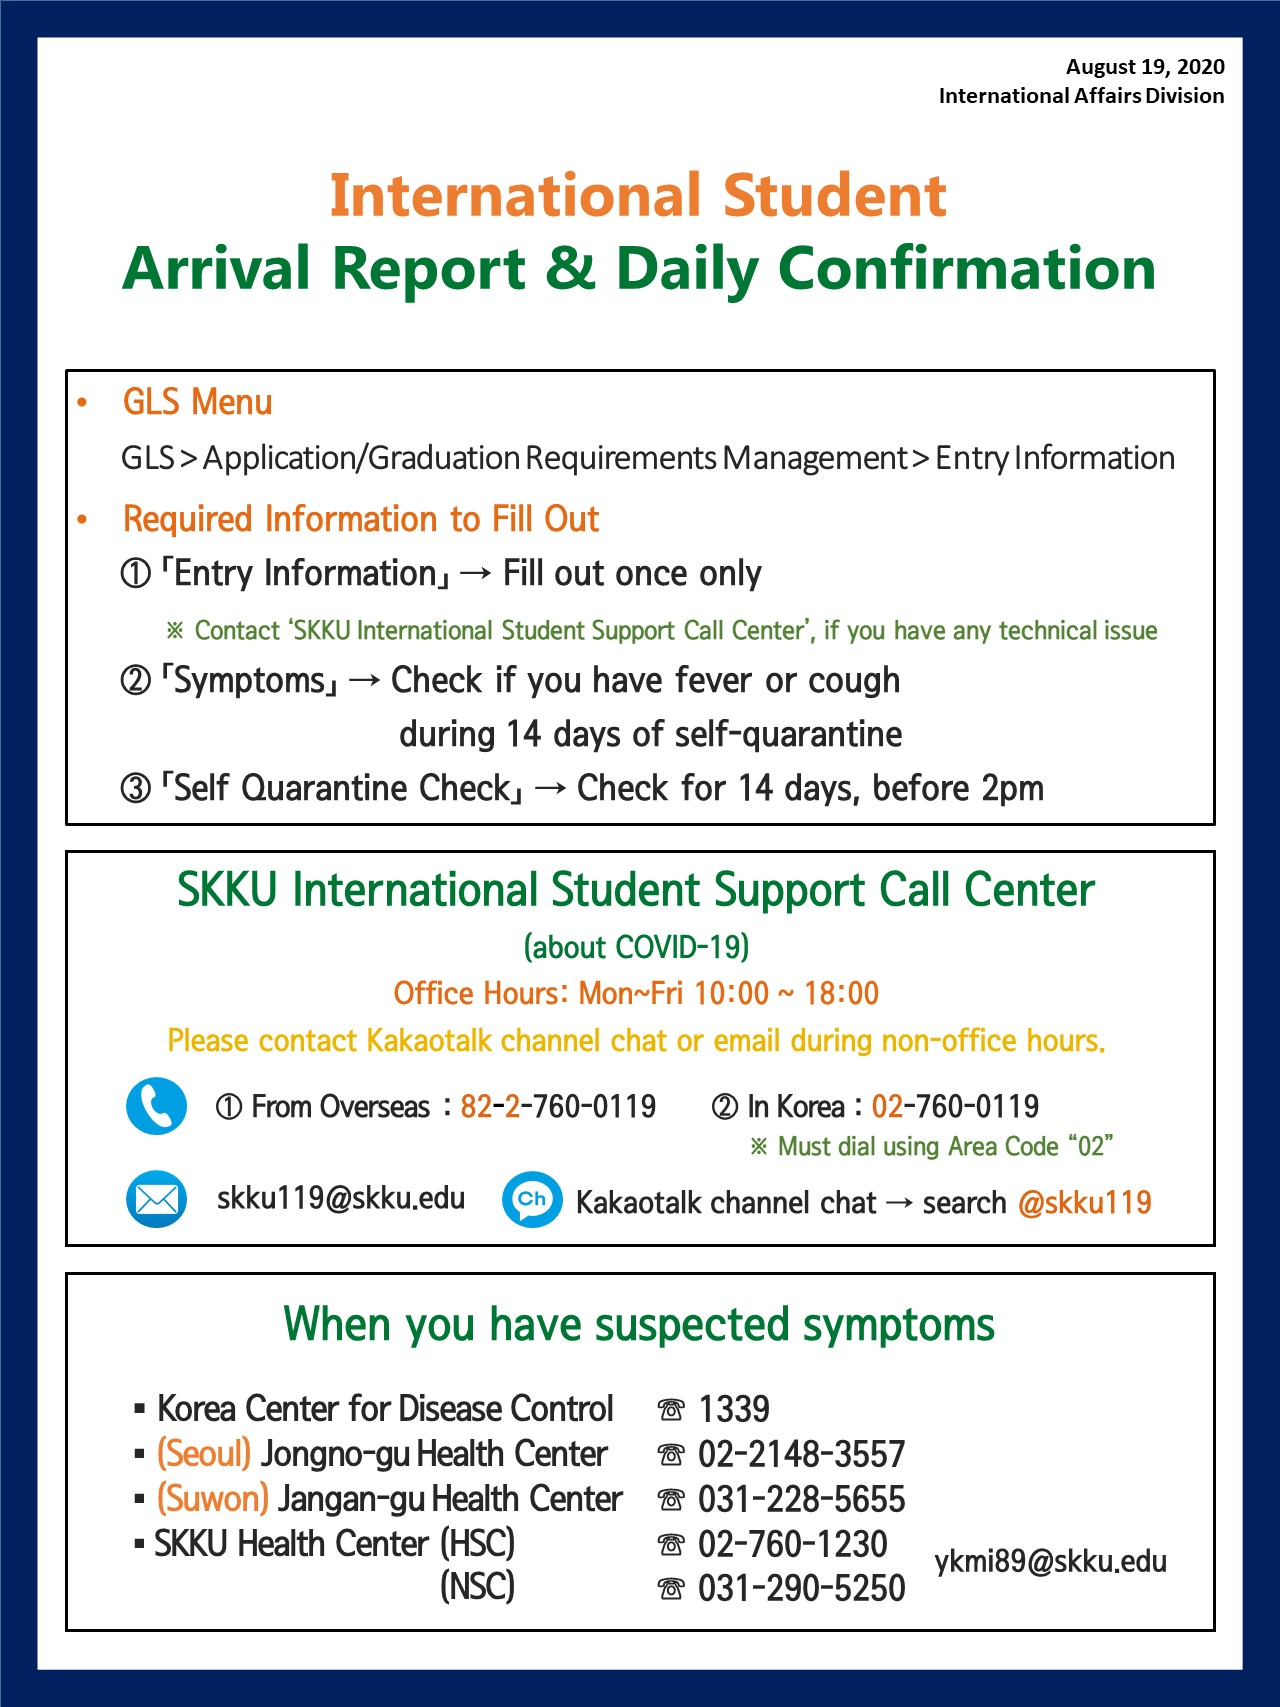 [International Student] Arrival Report & Daily Confirmation